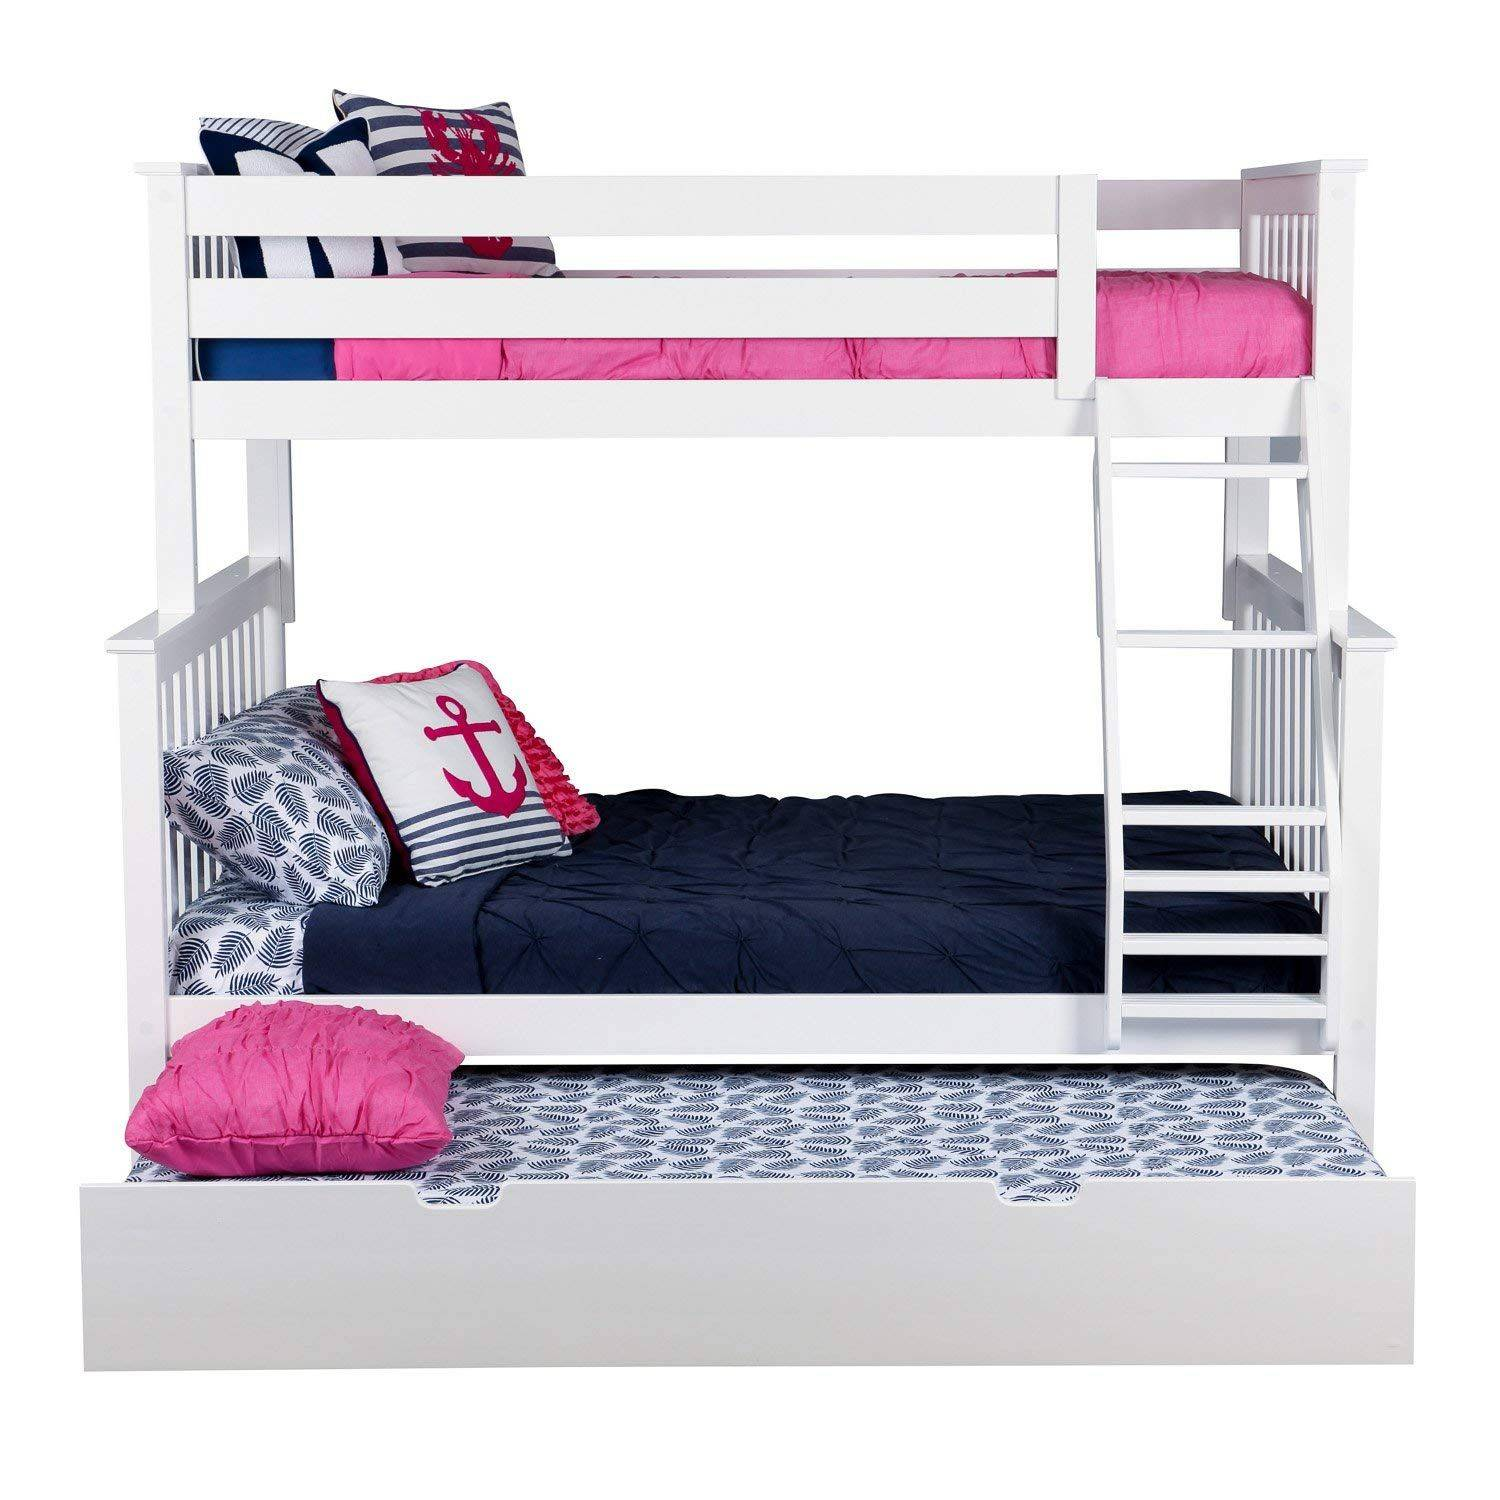 Small Bunk Beds Lovely Heavy Duty Bunk Beds for Adults Bunk Beds for Heavy People